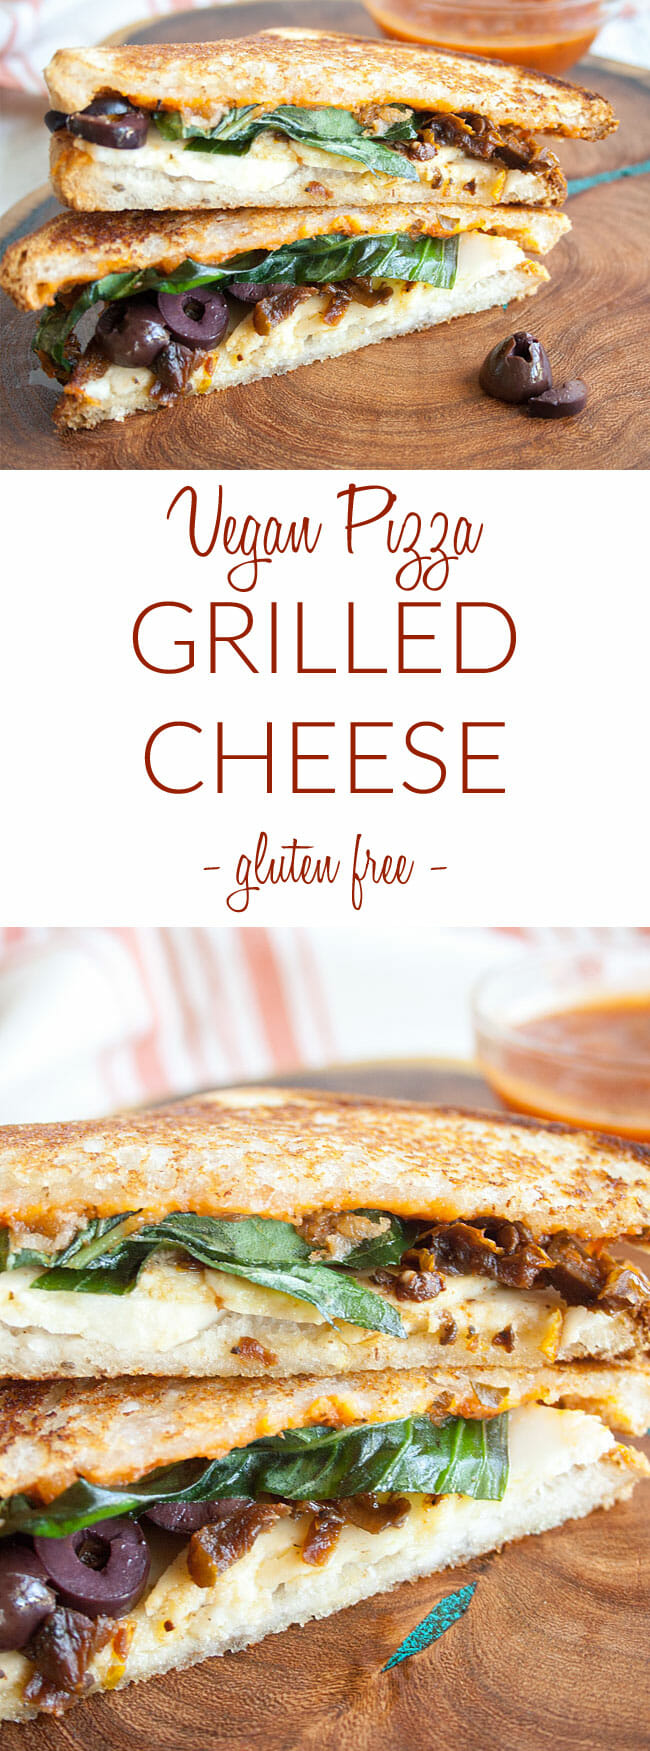 Pizza Grilled Cheese collage photo with text.